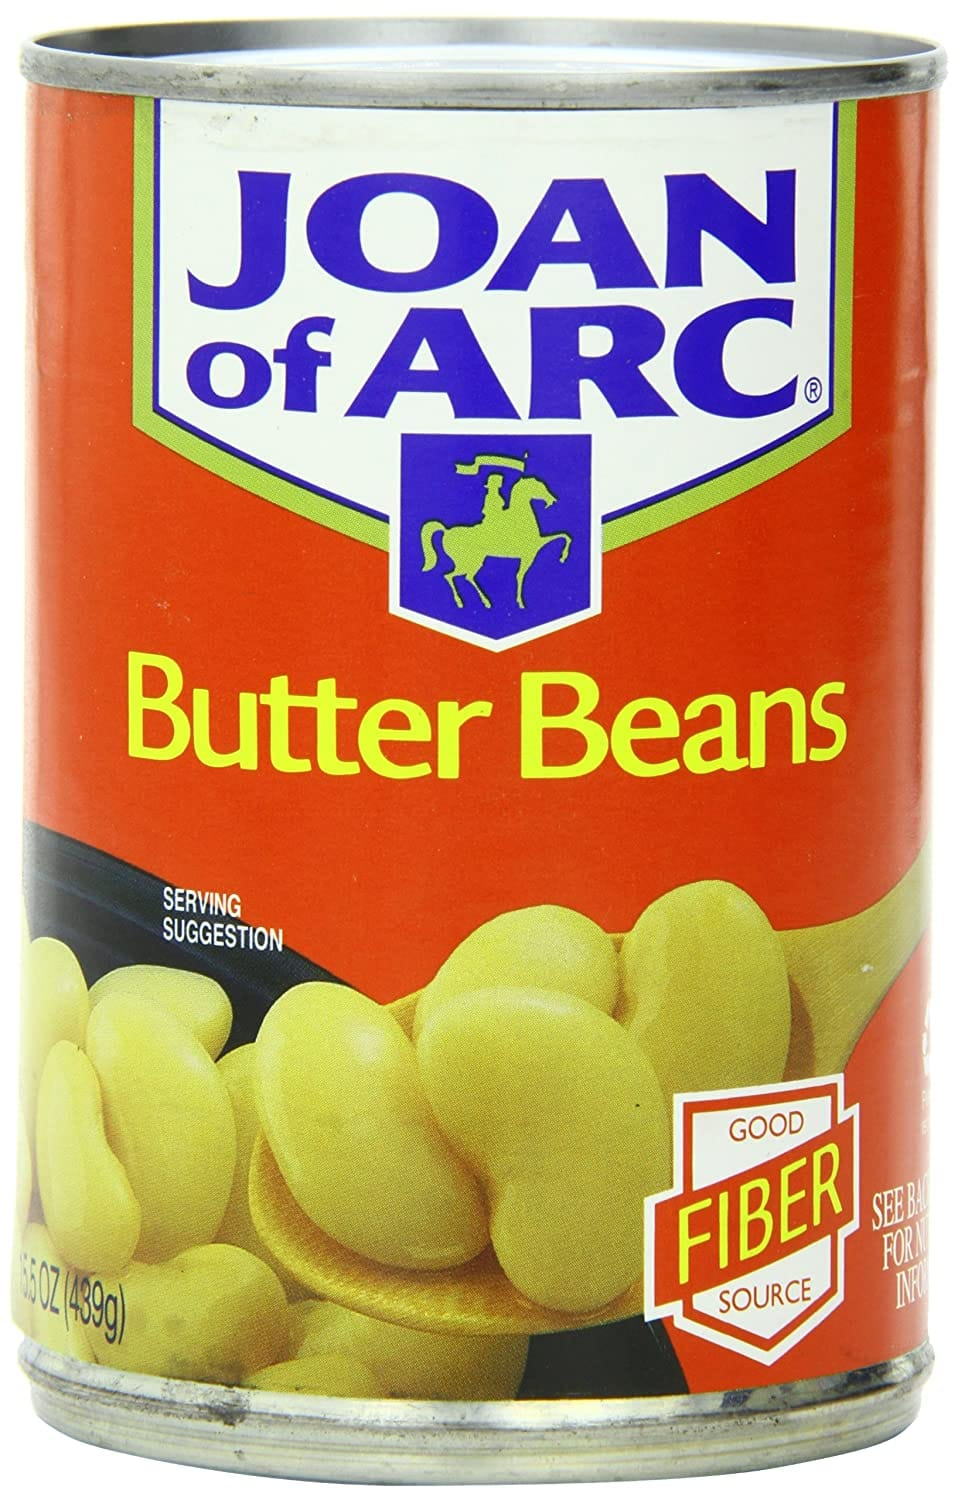 Joan of Arc Butter Beans, 15.5 Ounce (Pack of 12) for $10.68 @ Amazon